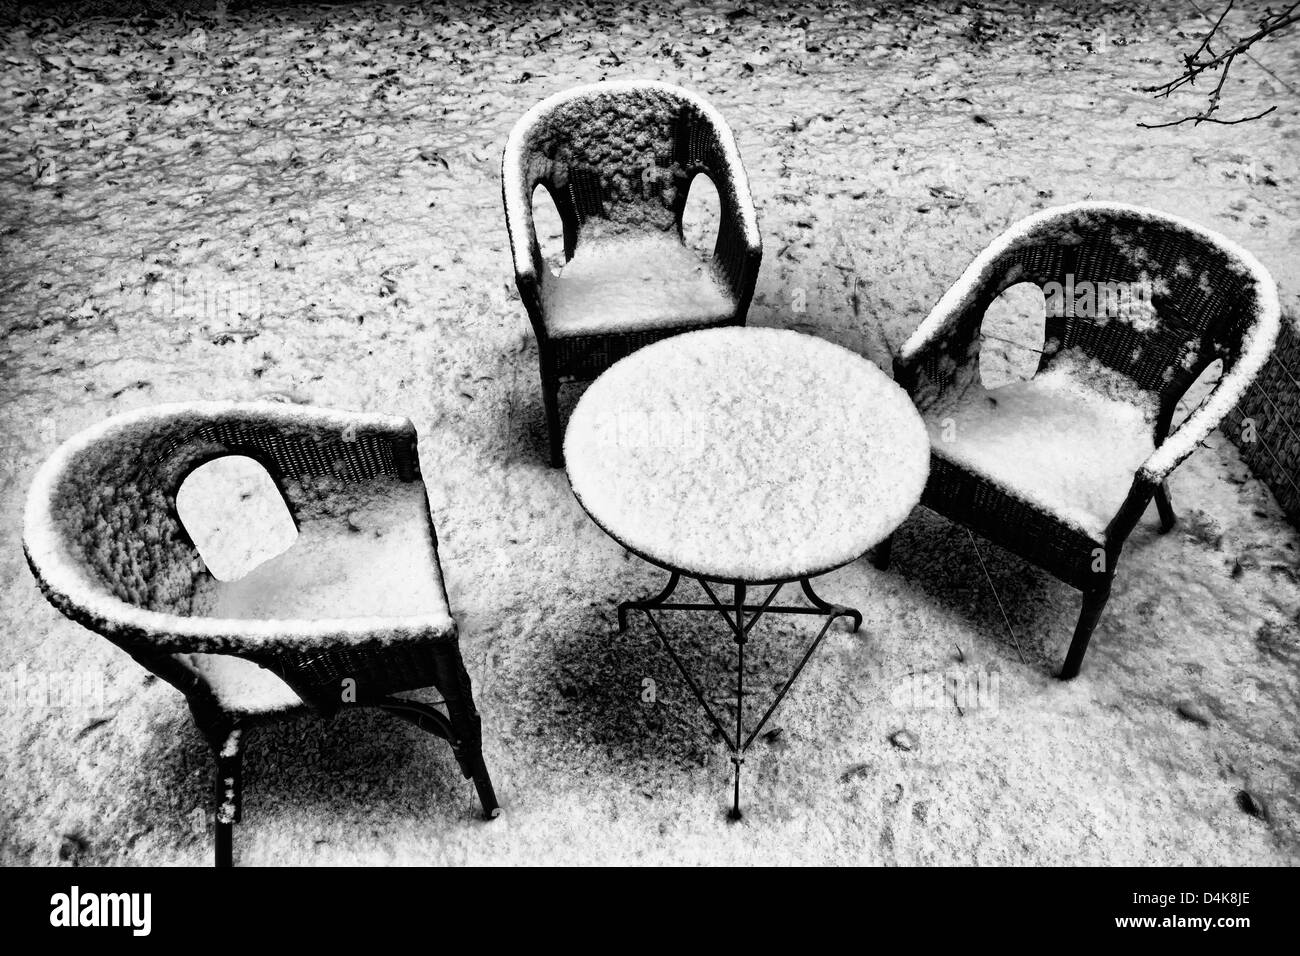 Chairs and table in snowy backyard - Stock Image